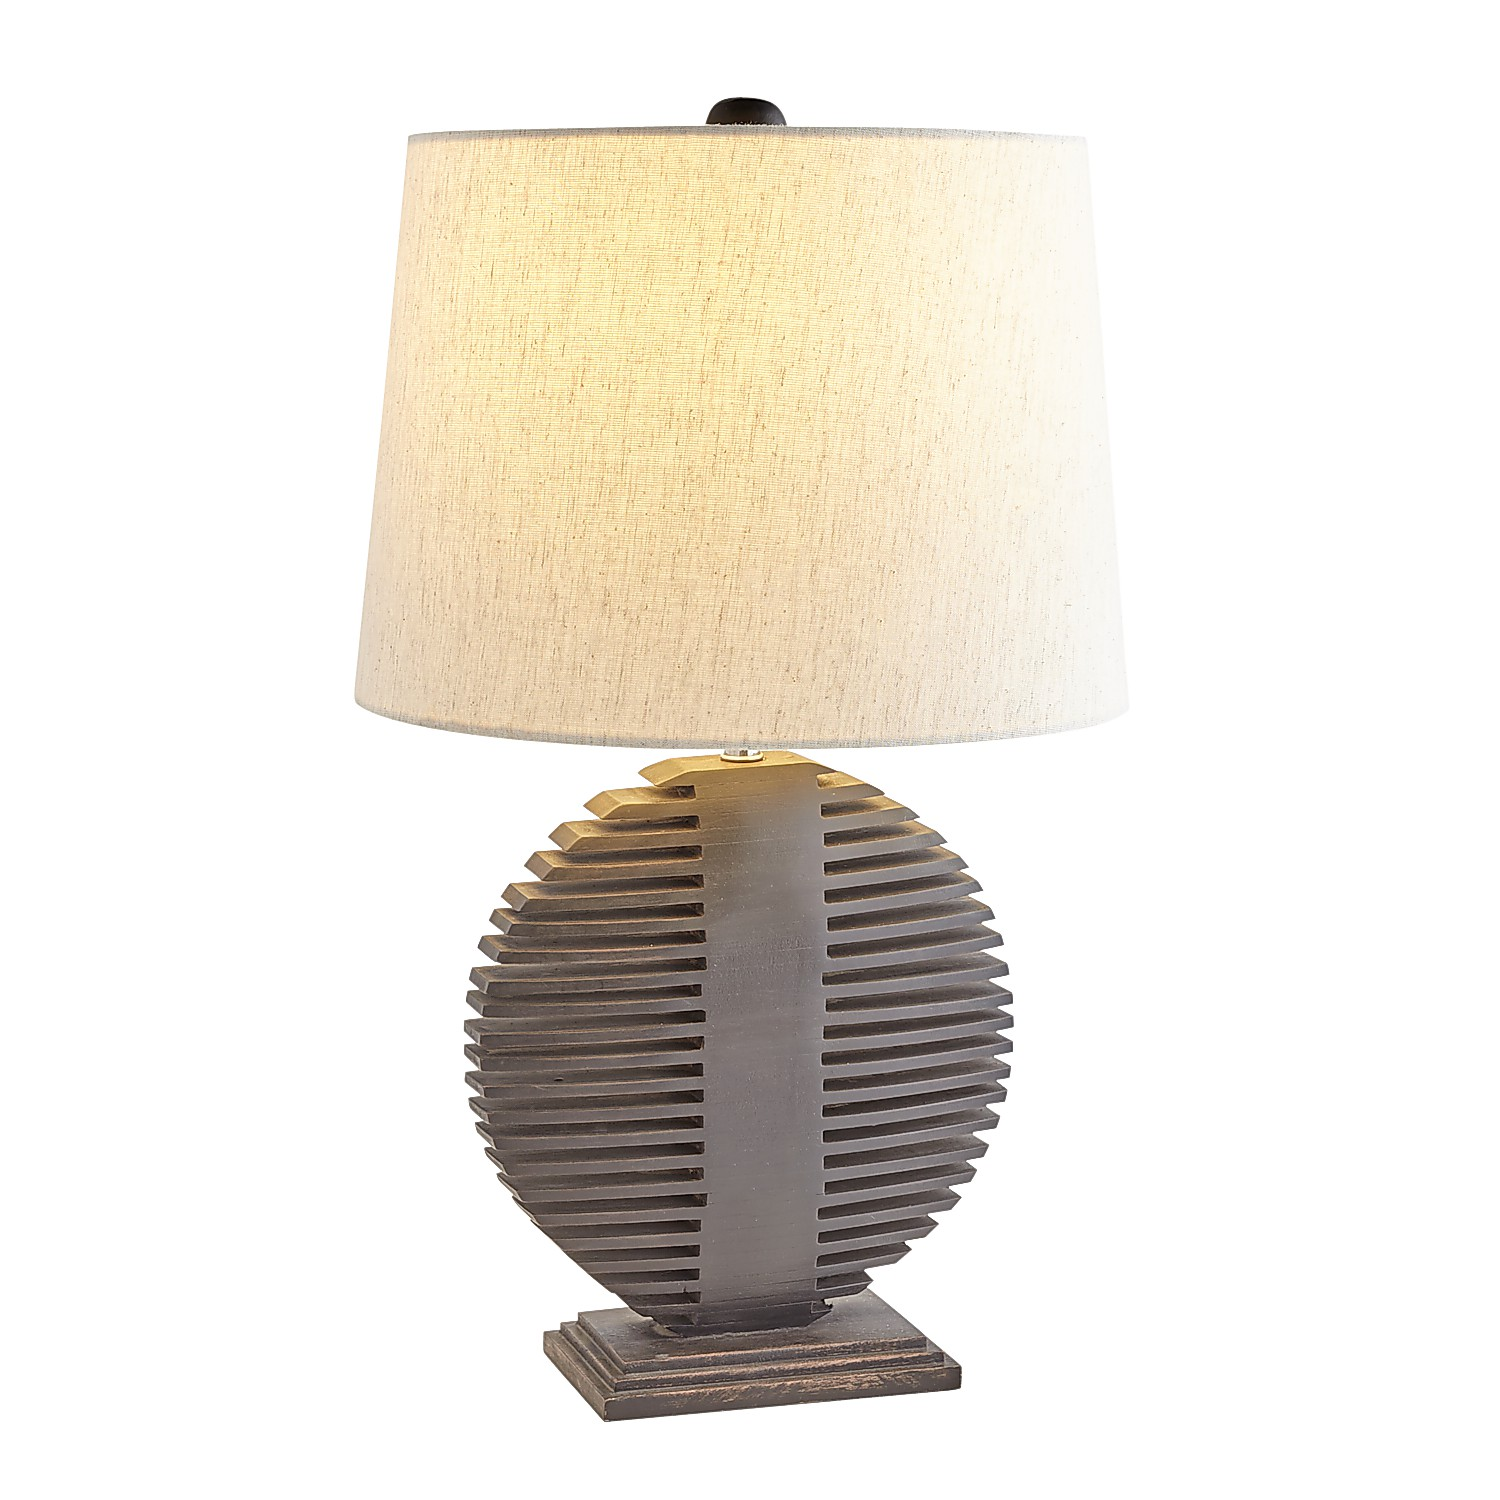 Oval Dark Wood Table Lamp